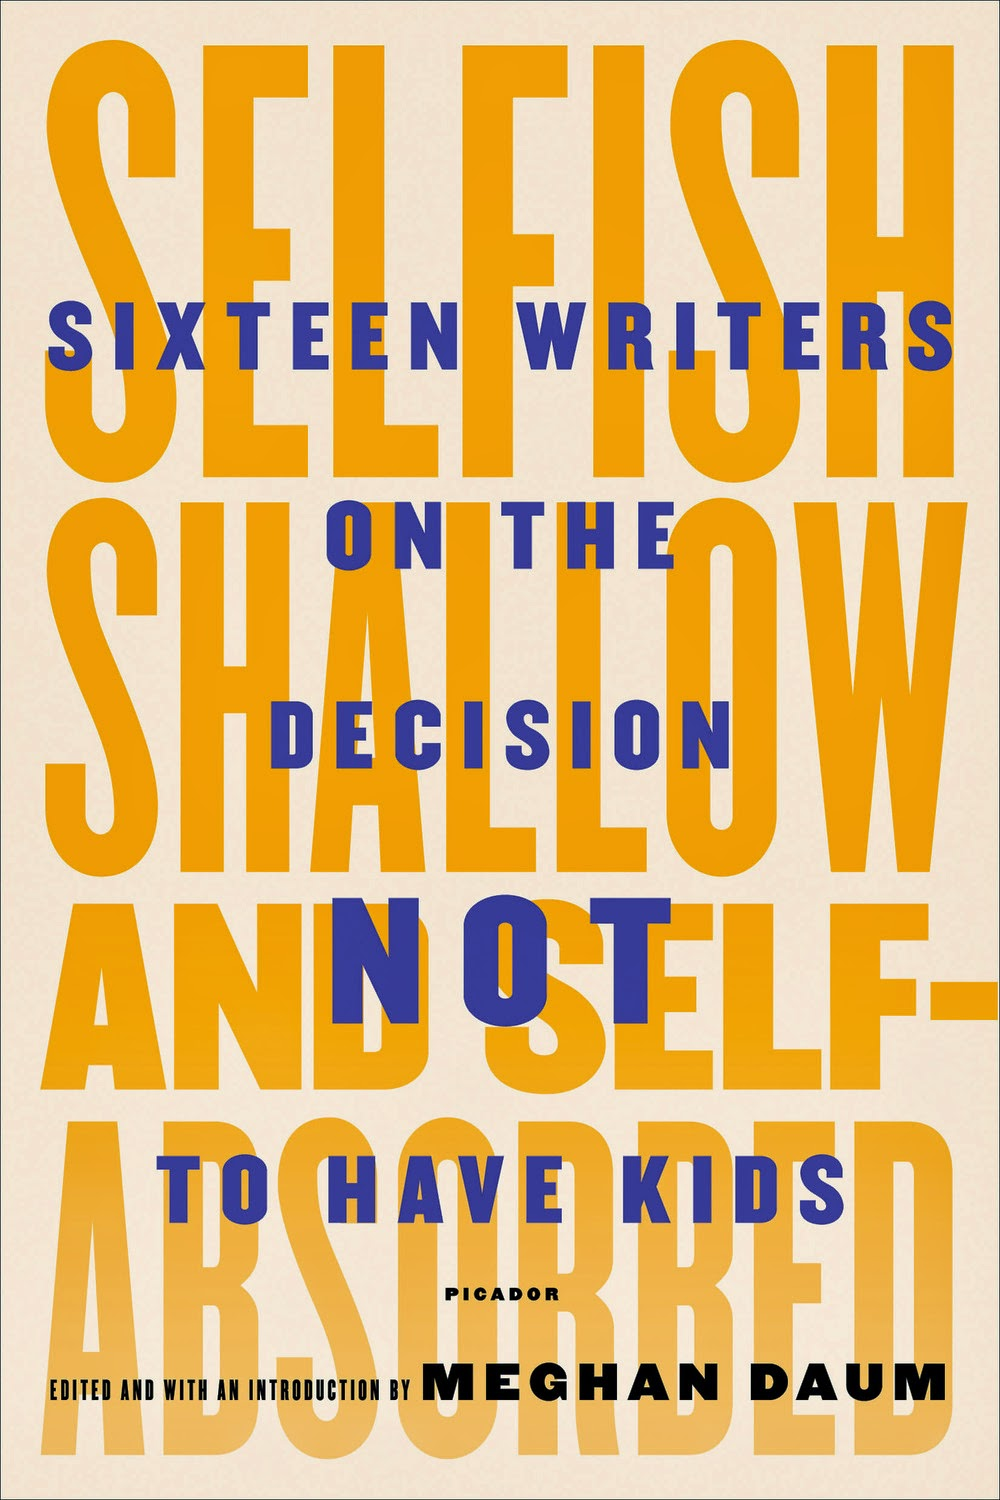 Book cover: 'Selfish, Shallow and Self-Absorbed' by Meghan Daum. Cover image consists of the book's title, in yellow, against a pale pink or lavender background. Over it, the book's subtitle is printed in purple: 'Sixteen Writers on the Decision NOT to Have Kids.'